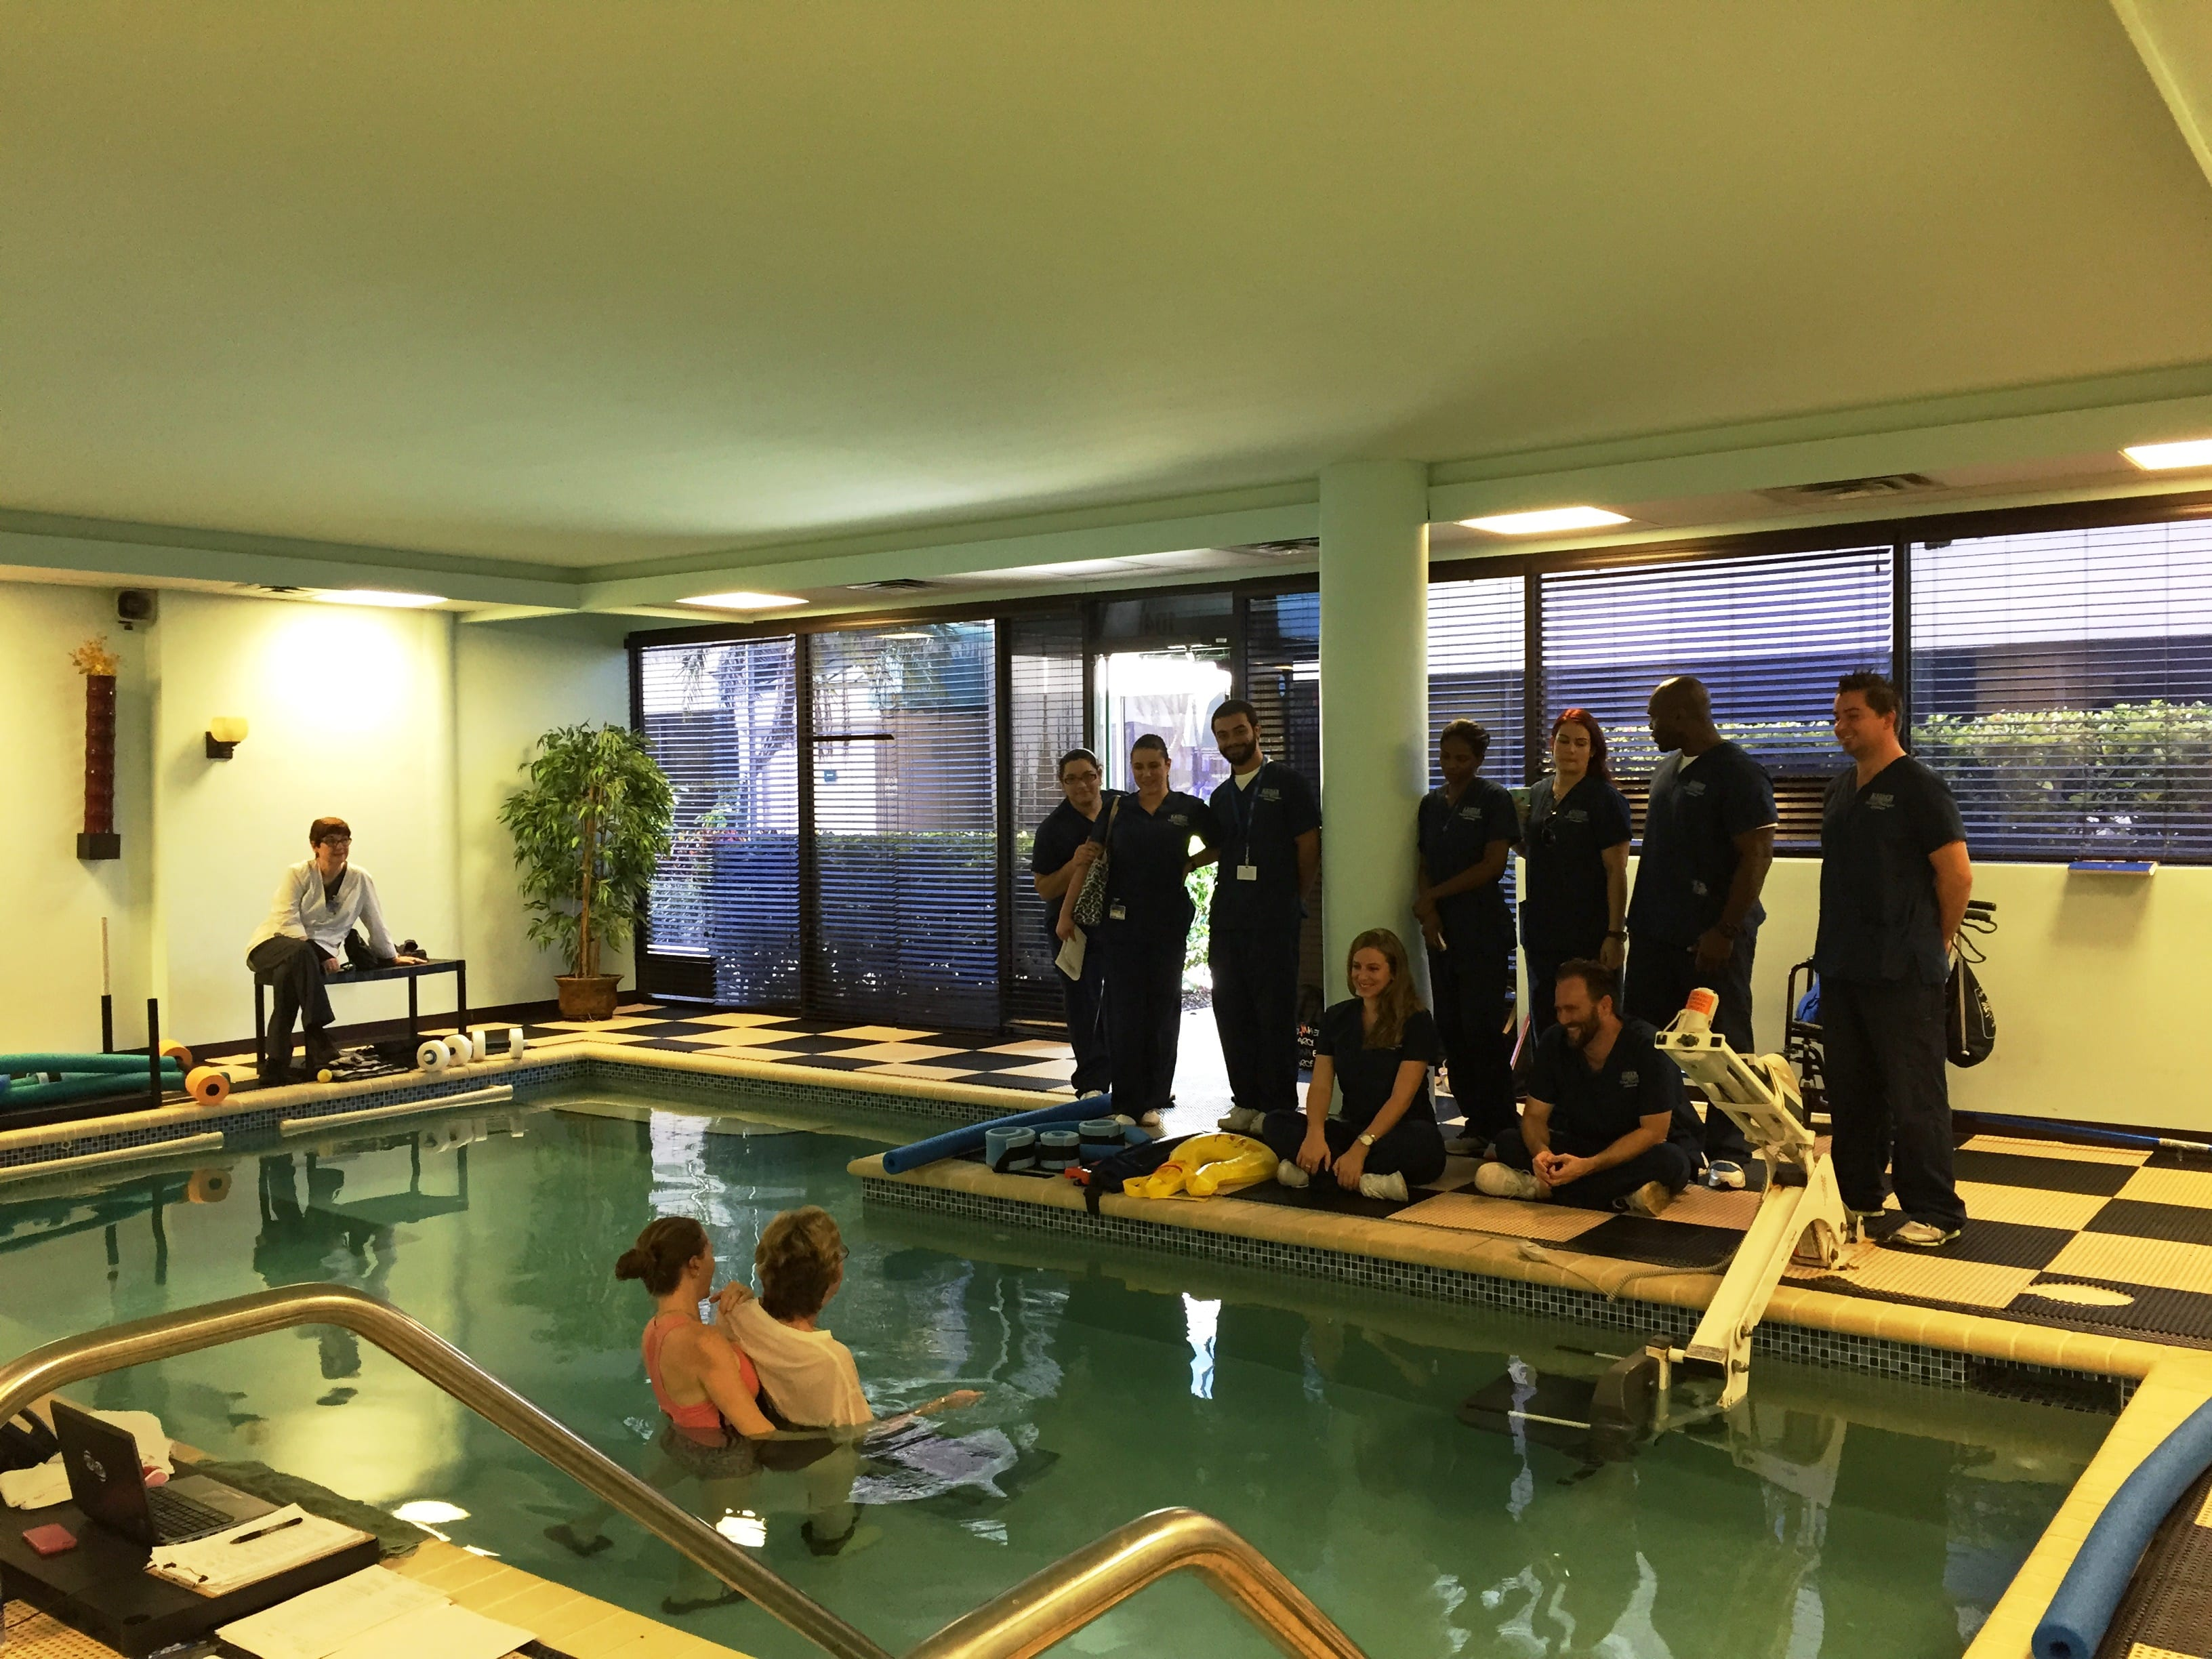 PTA Students from Ft. Lauderdale Learn About Aquatic Physical Therapy Techniques